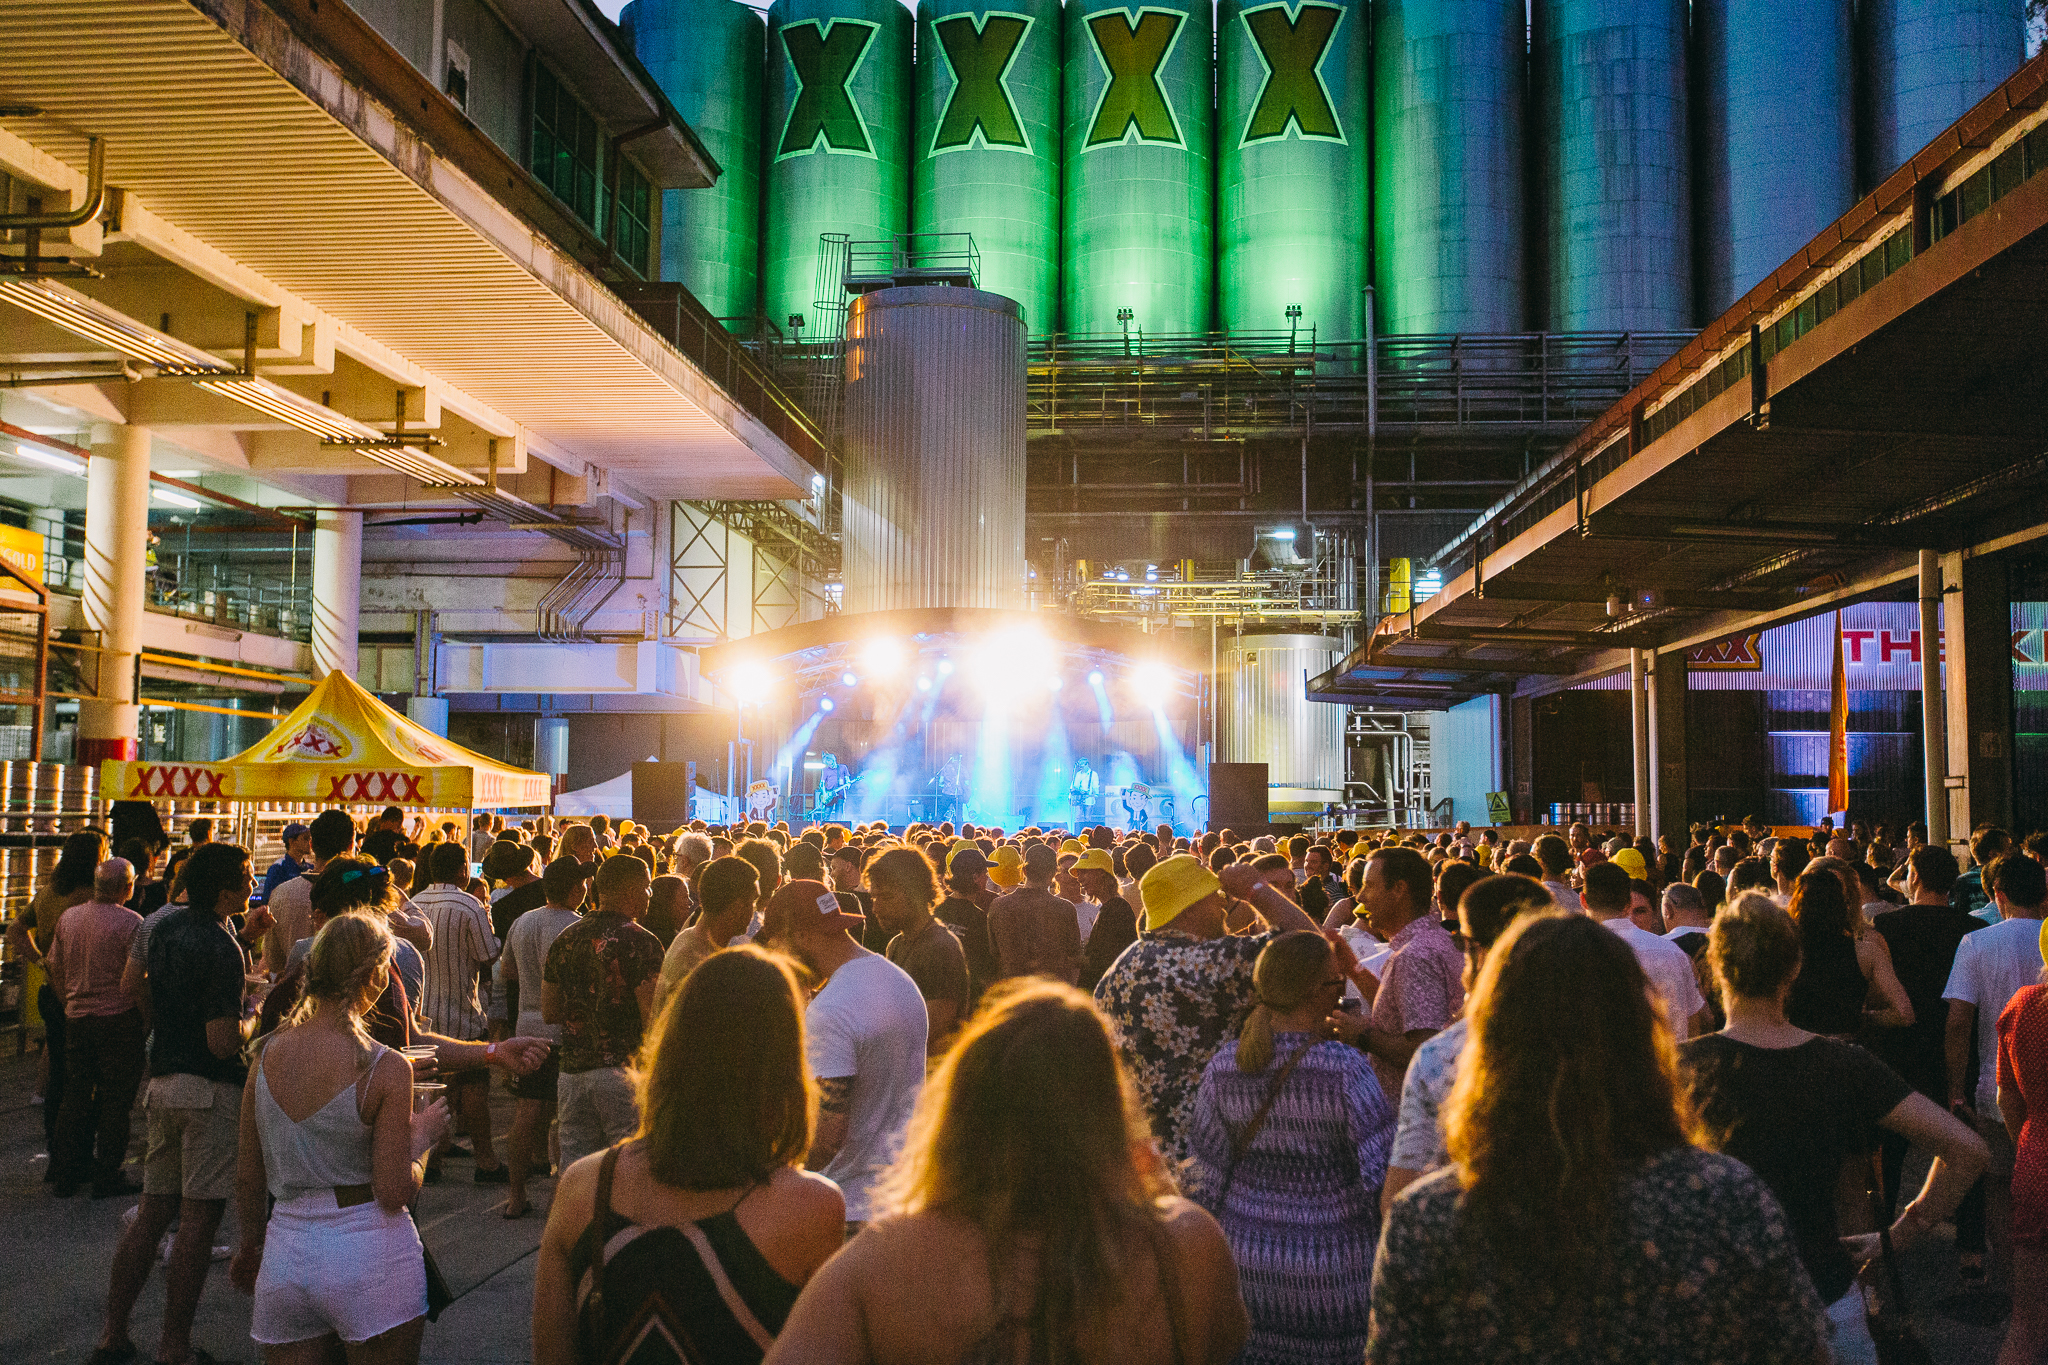 NSW Queensland Live Venue Capacities To Increase Next Week As COVID Restrictions Ease